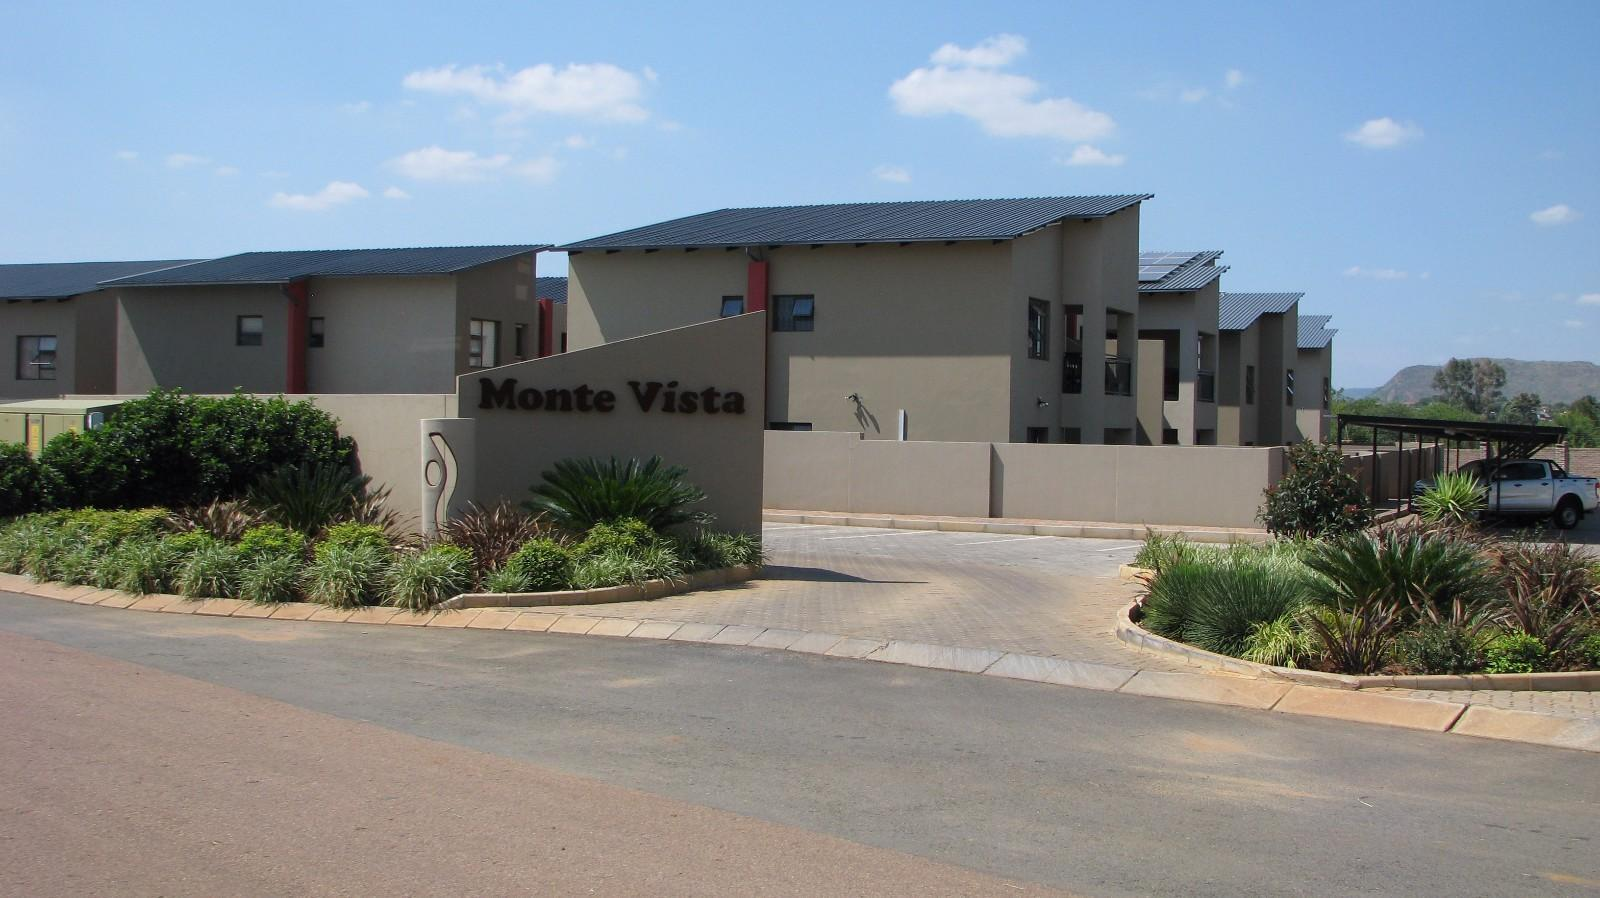 Apartment in Melodie - Monte Vista Sectional Title Units